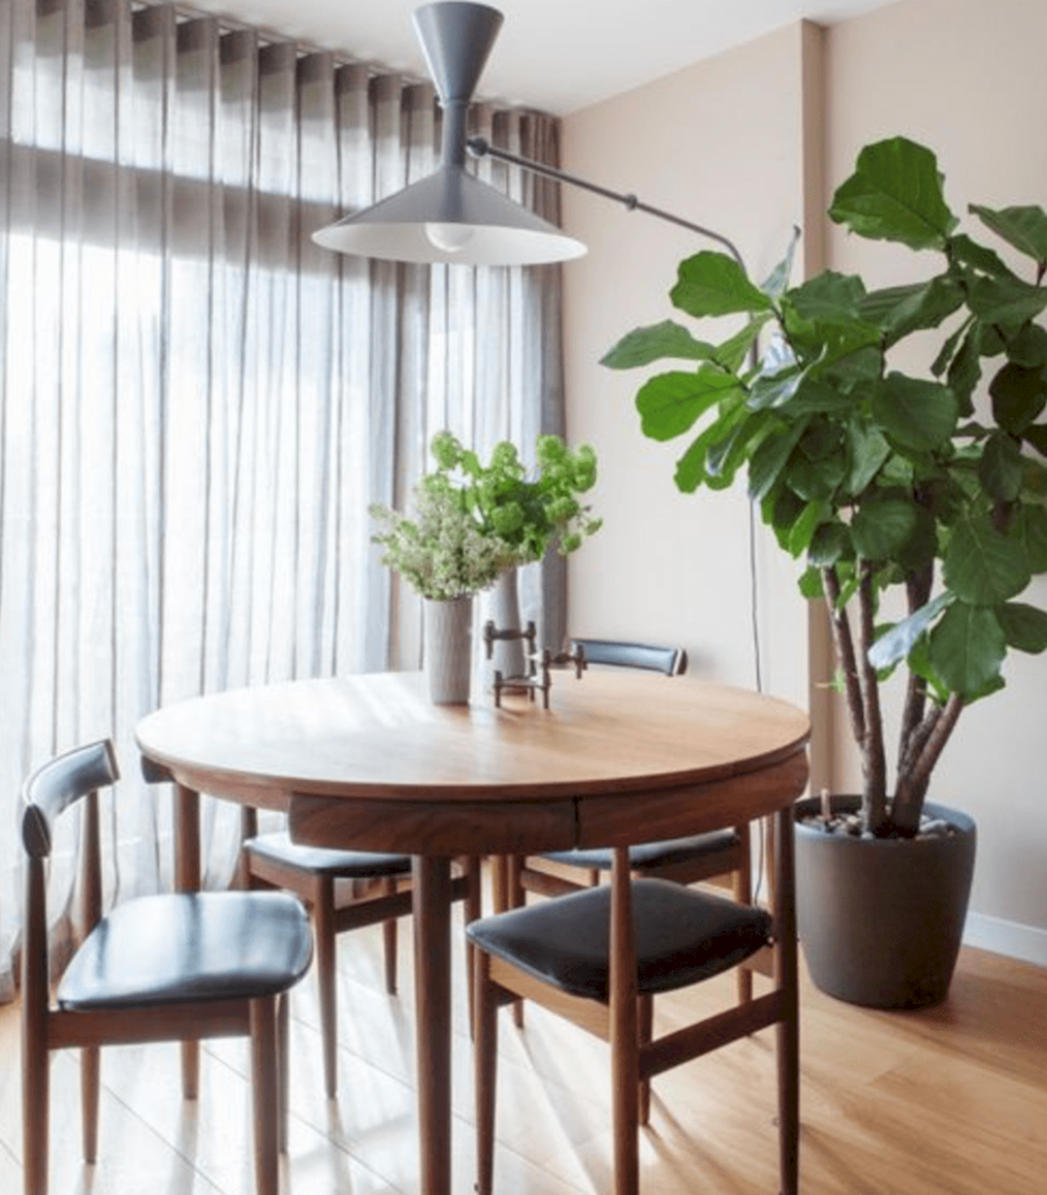 11 Awesome Dining Room Design With Bright Color Dining Table Ideas  - Dining Room Ideas With Plants